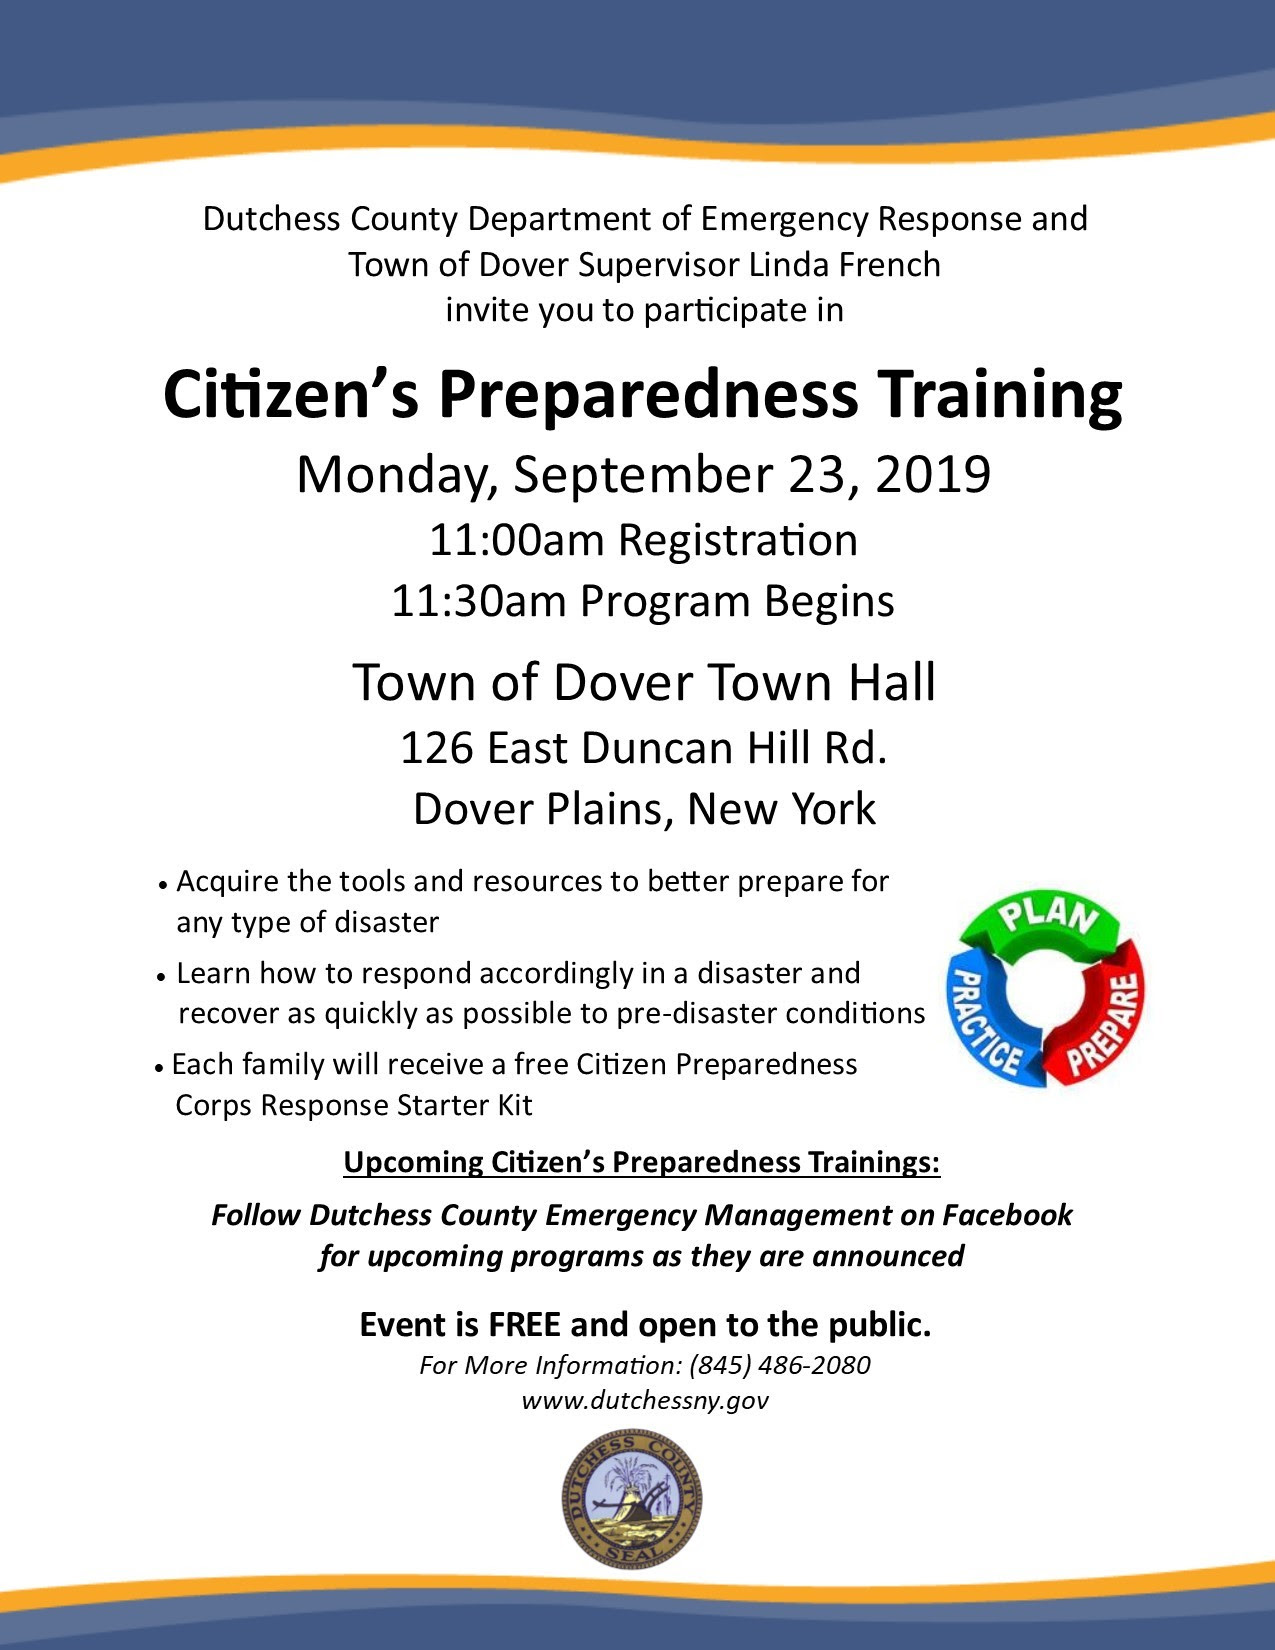 The next Citizen's Preparedness Training will be Sept. 23rd in the Town of Dover